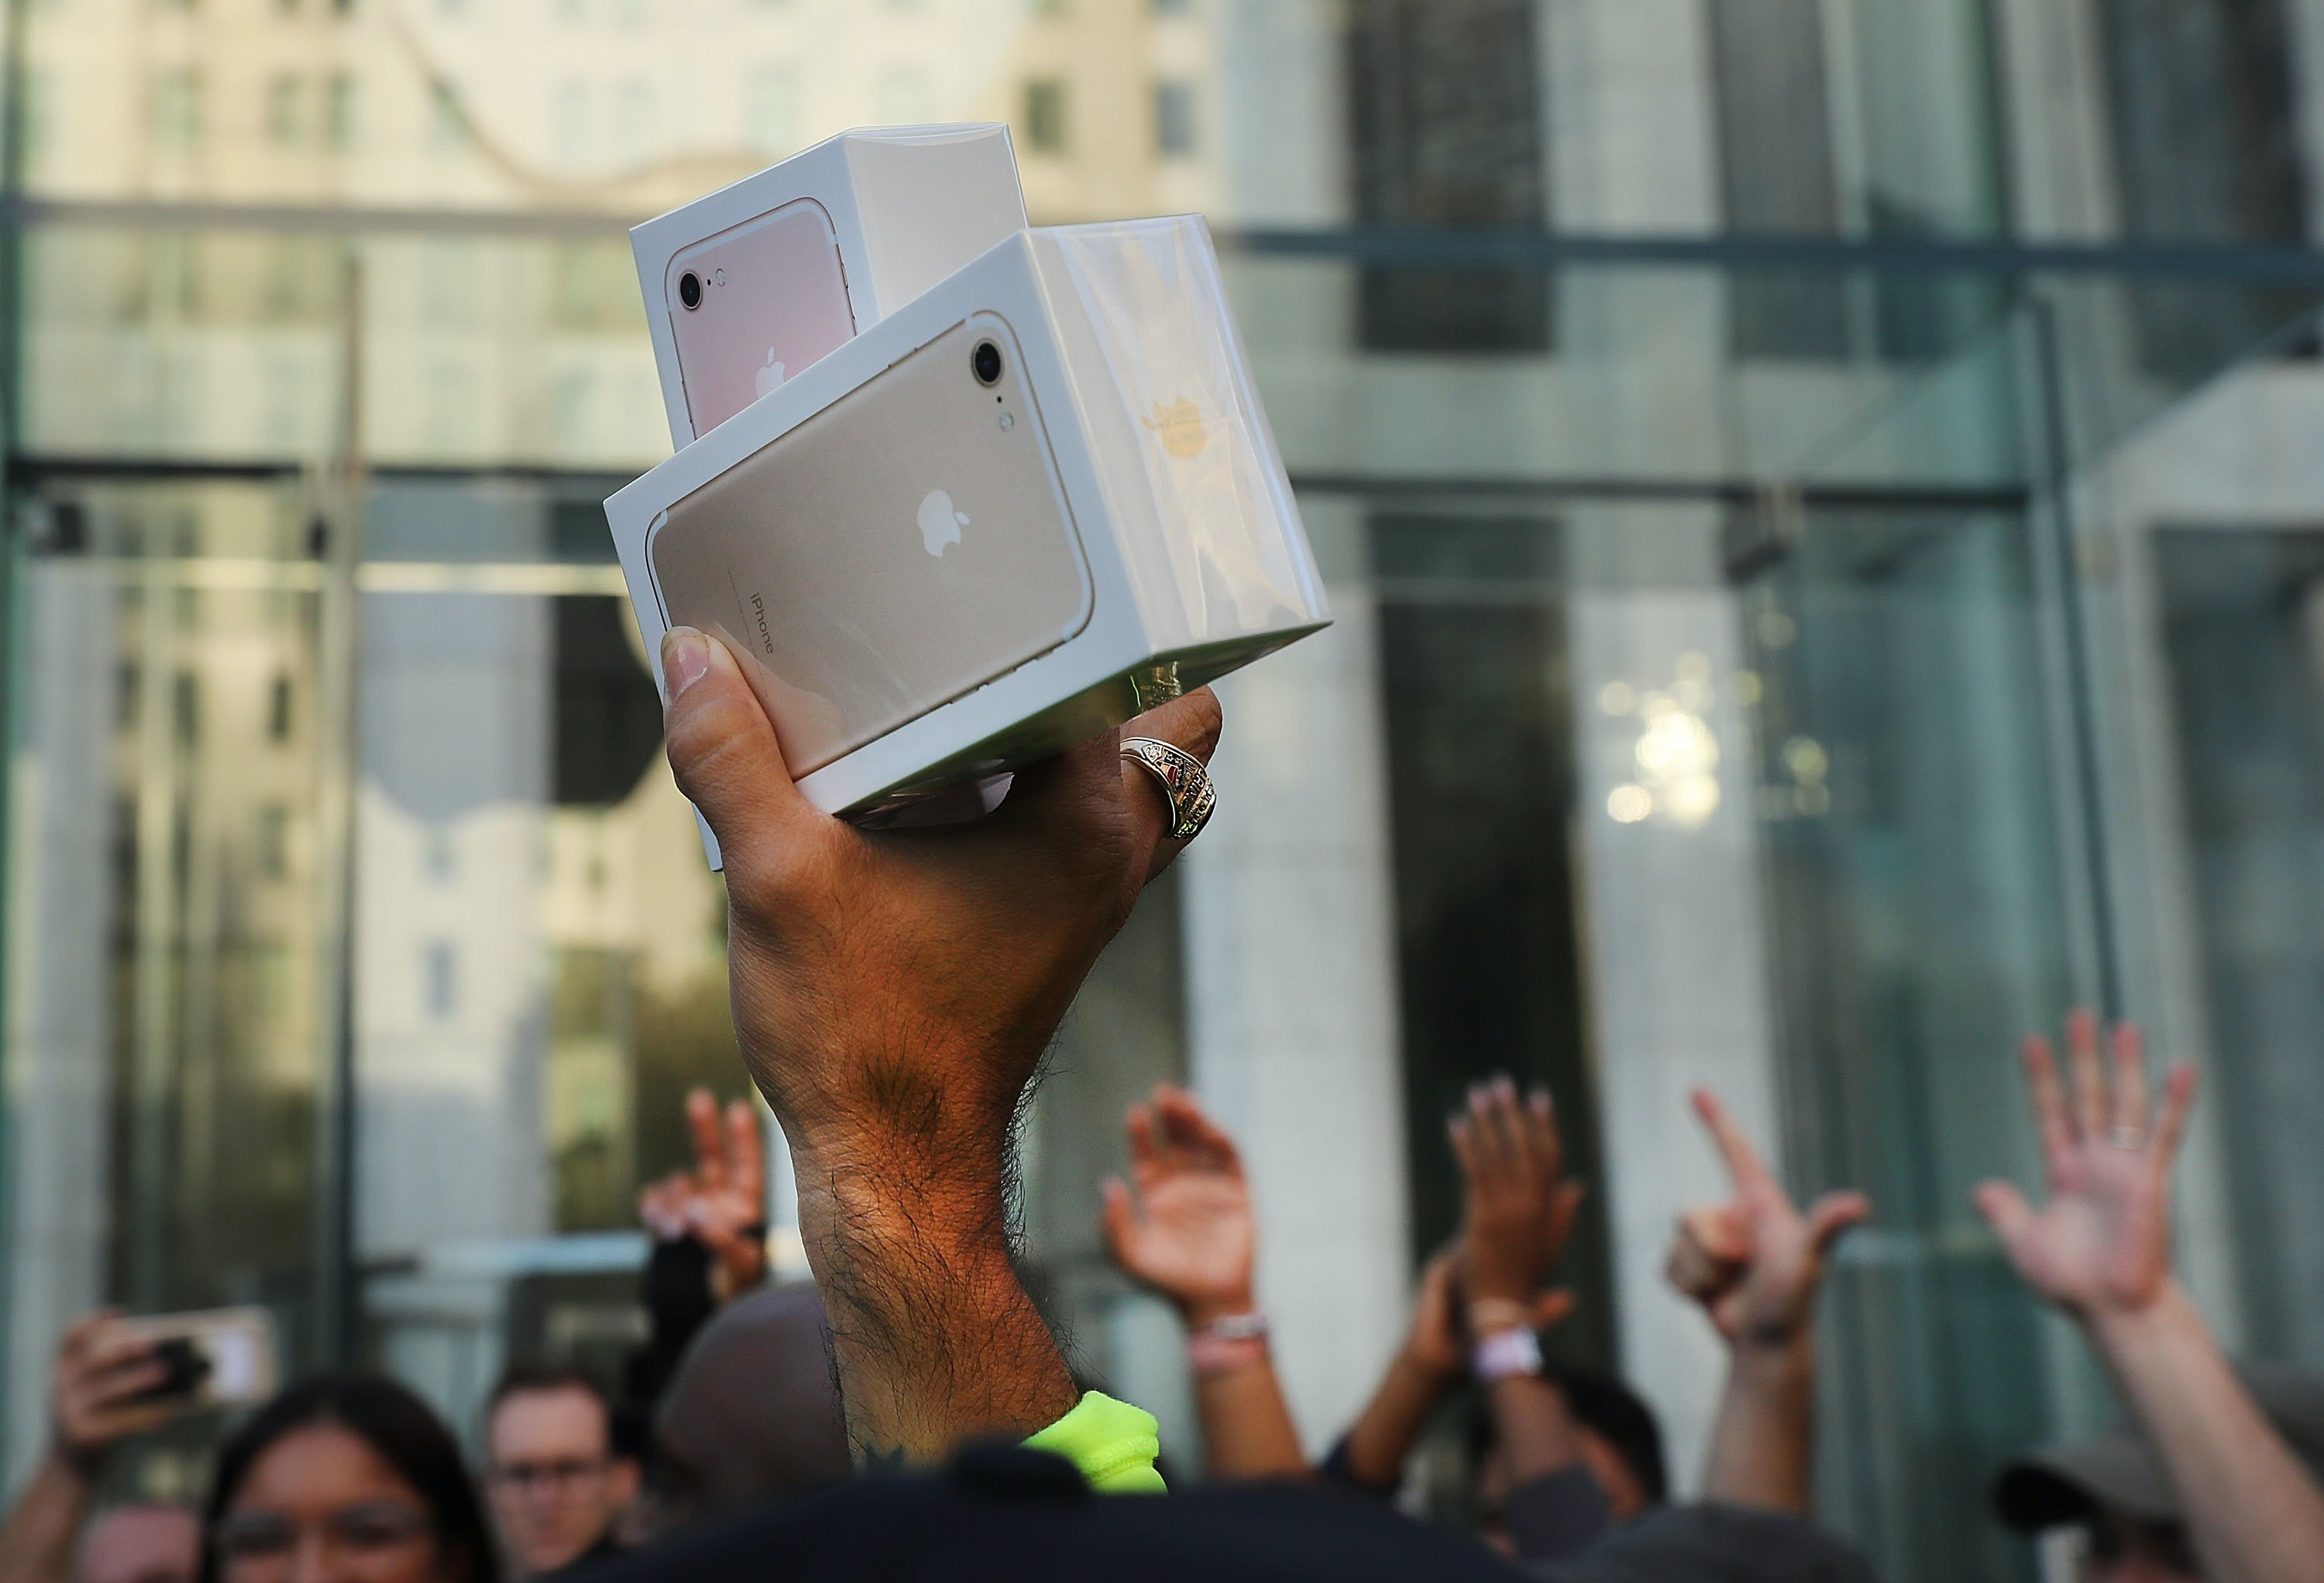 Iphone 5 christmas gift activation